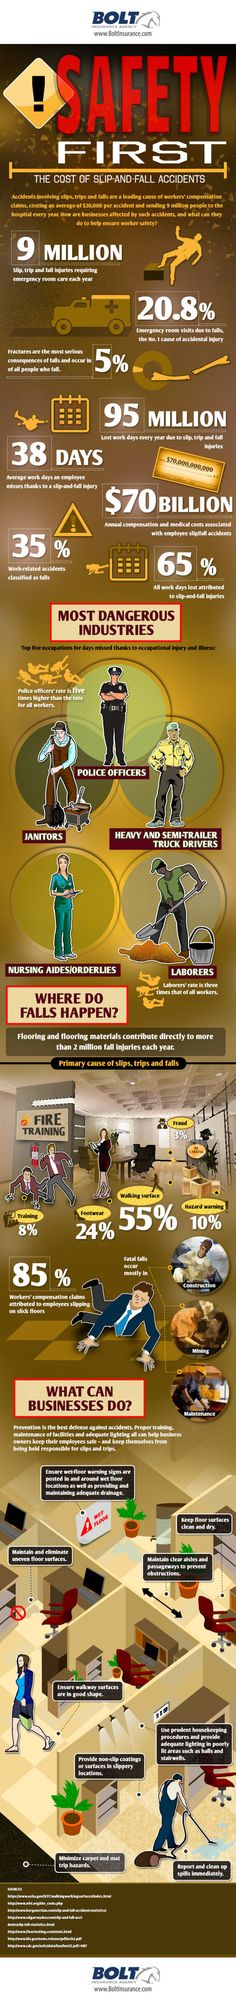 Infographic: The High Cost of Slips, Trips and Falls | Safety content from EHS Today